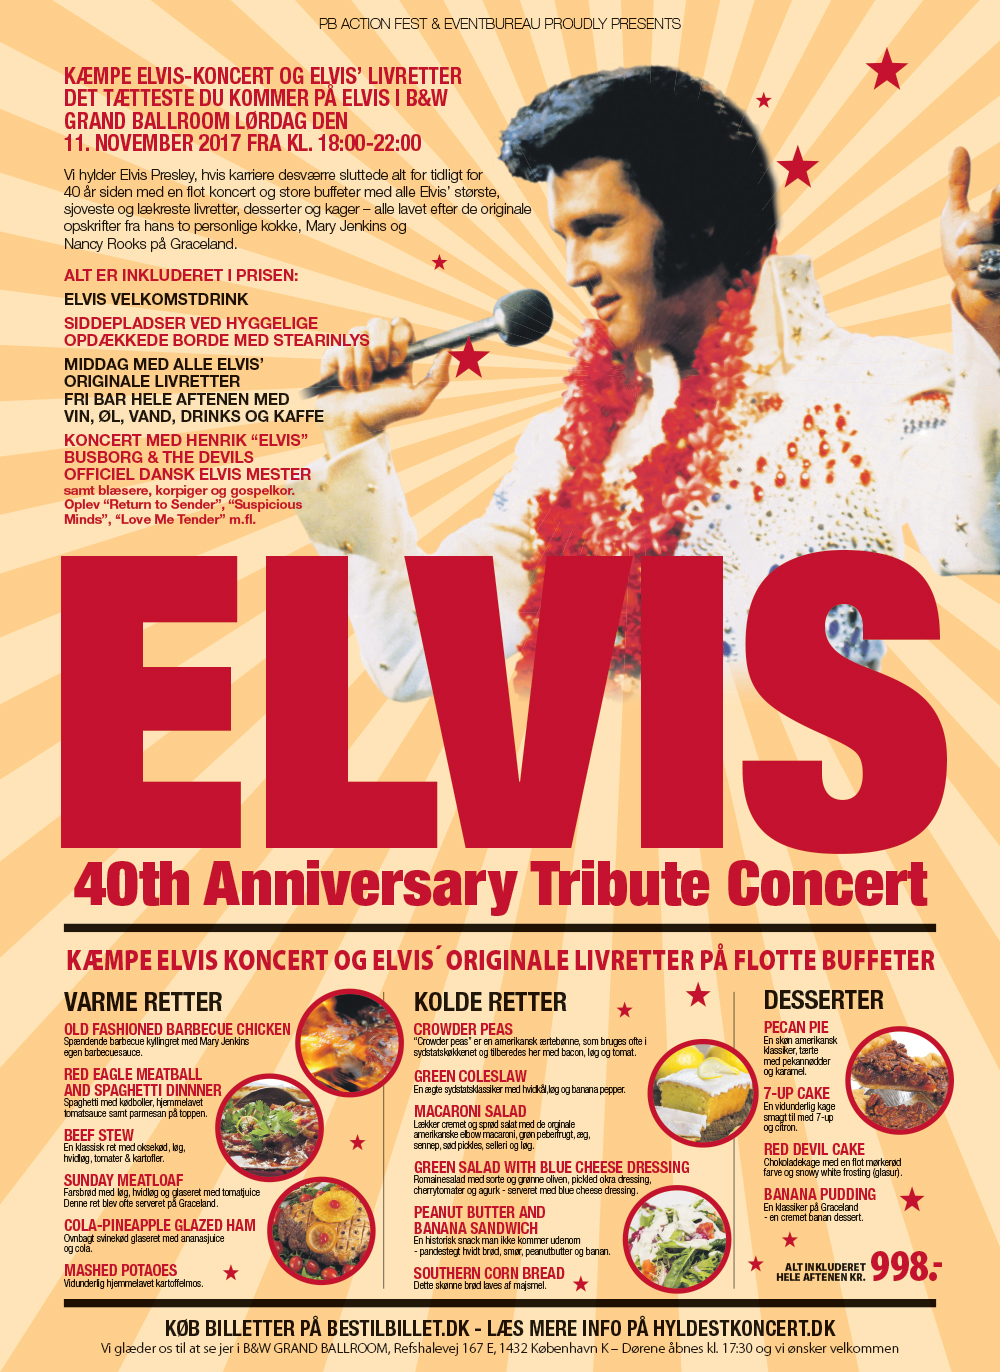 ELVIS Tribute Concert - Den 11. november 2017